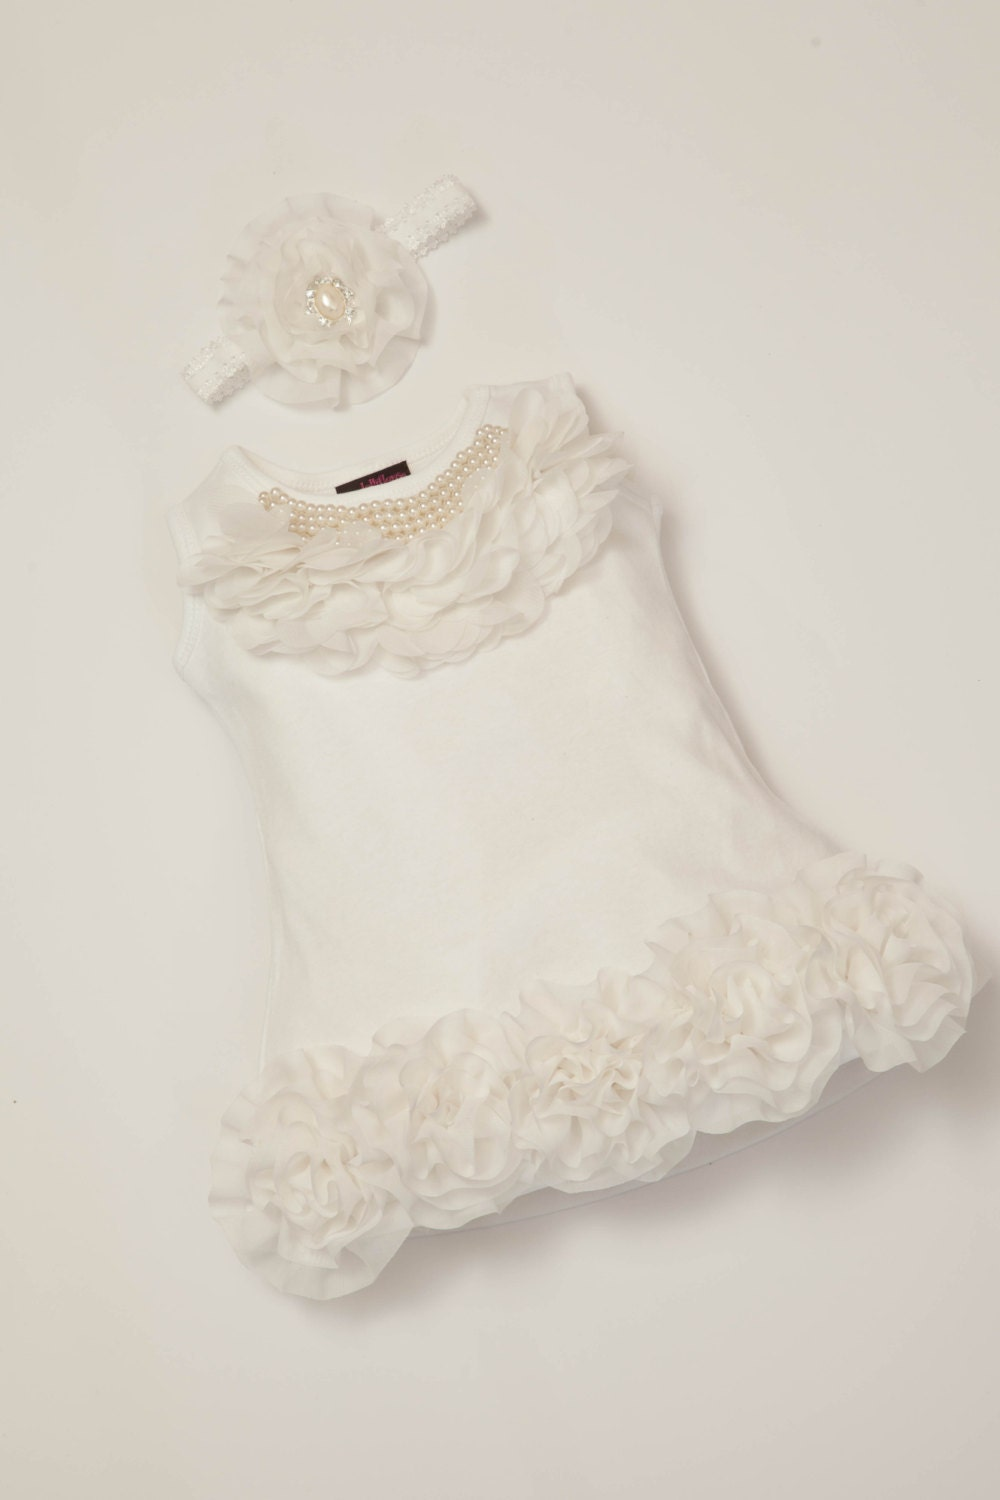 0-12ms Baby Girl Dress Cotton Infant White Dress with Chiffon